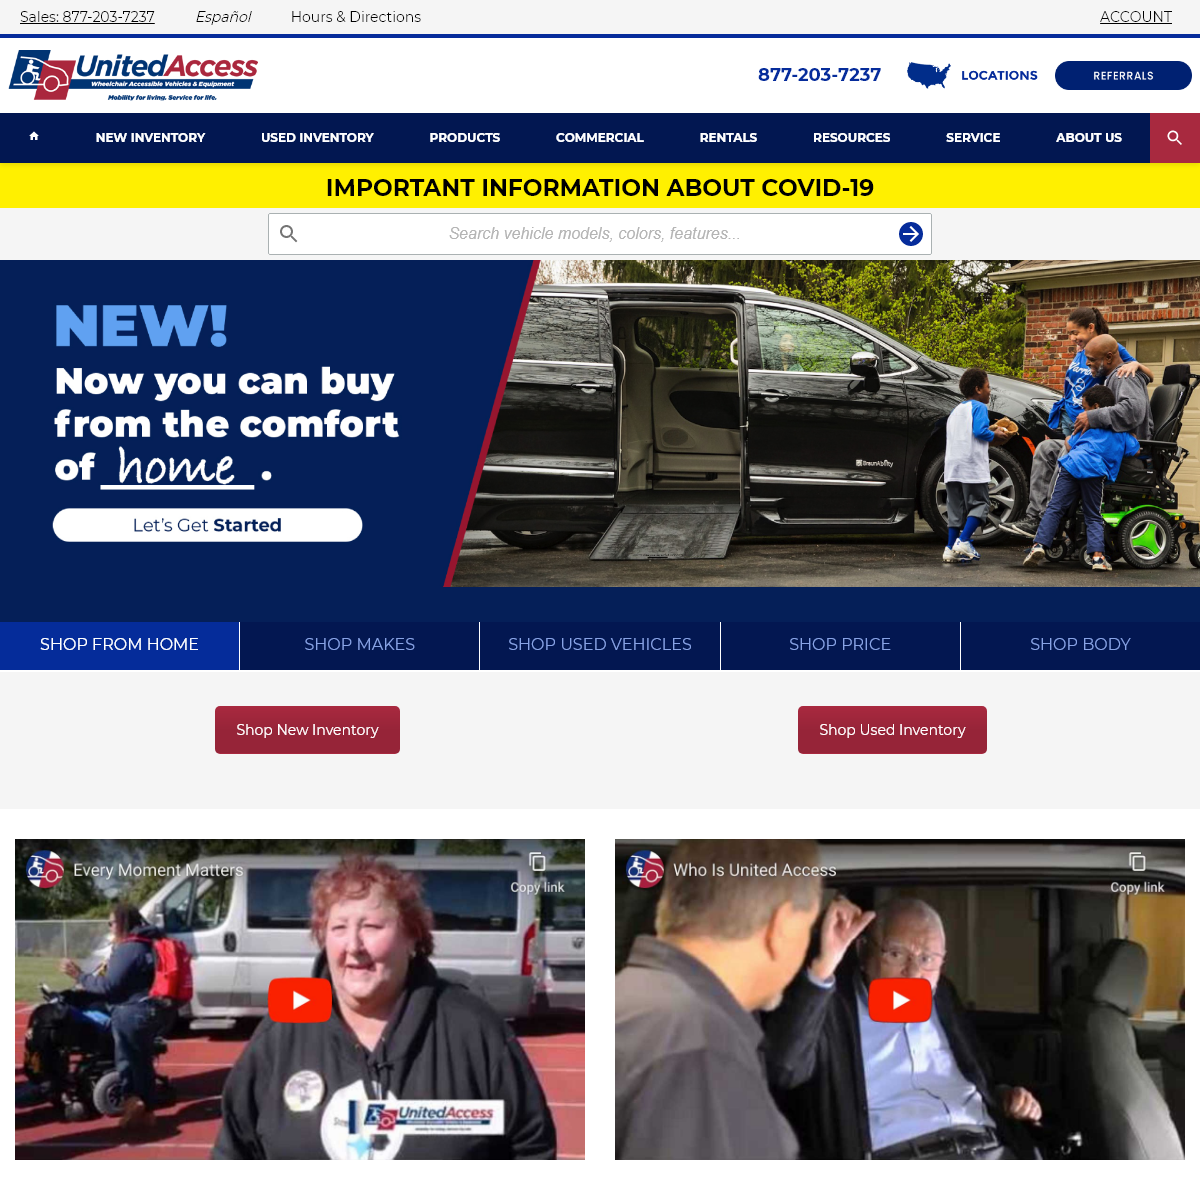 United Access- Wheelchair Vans for Sale, Handicap Accessible Vehicles, Mobility Dealerships